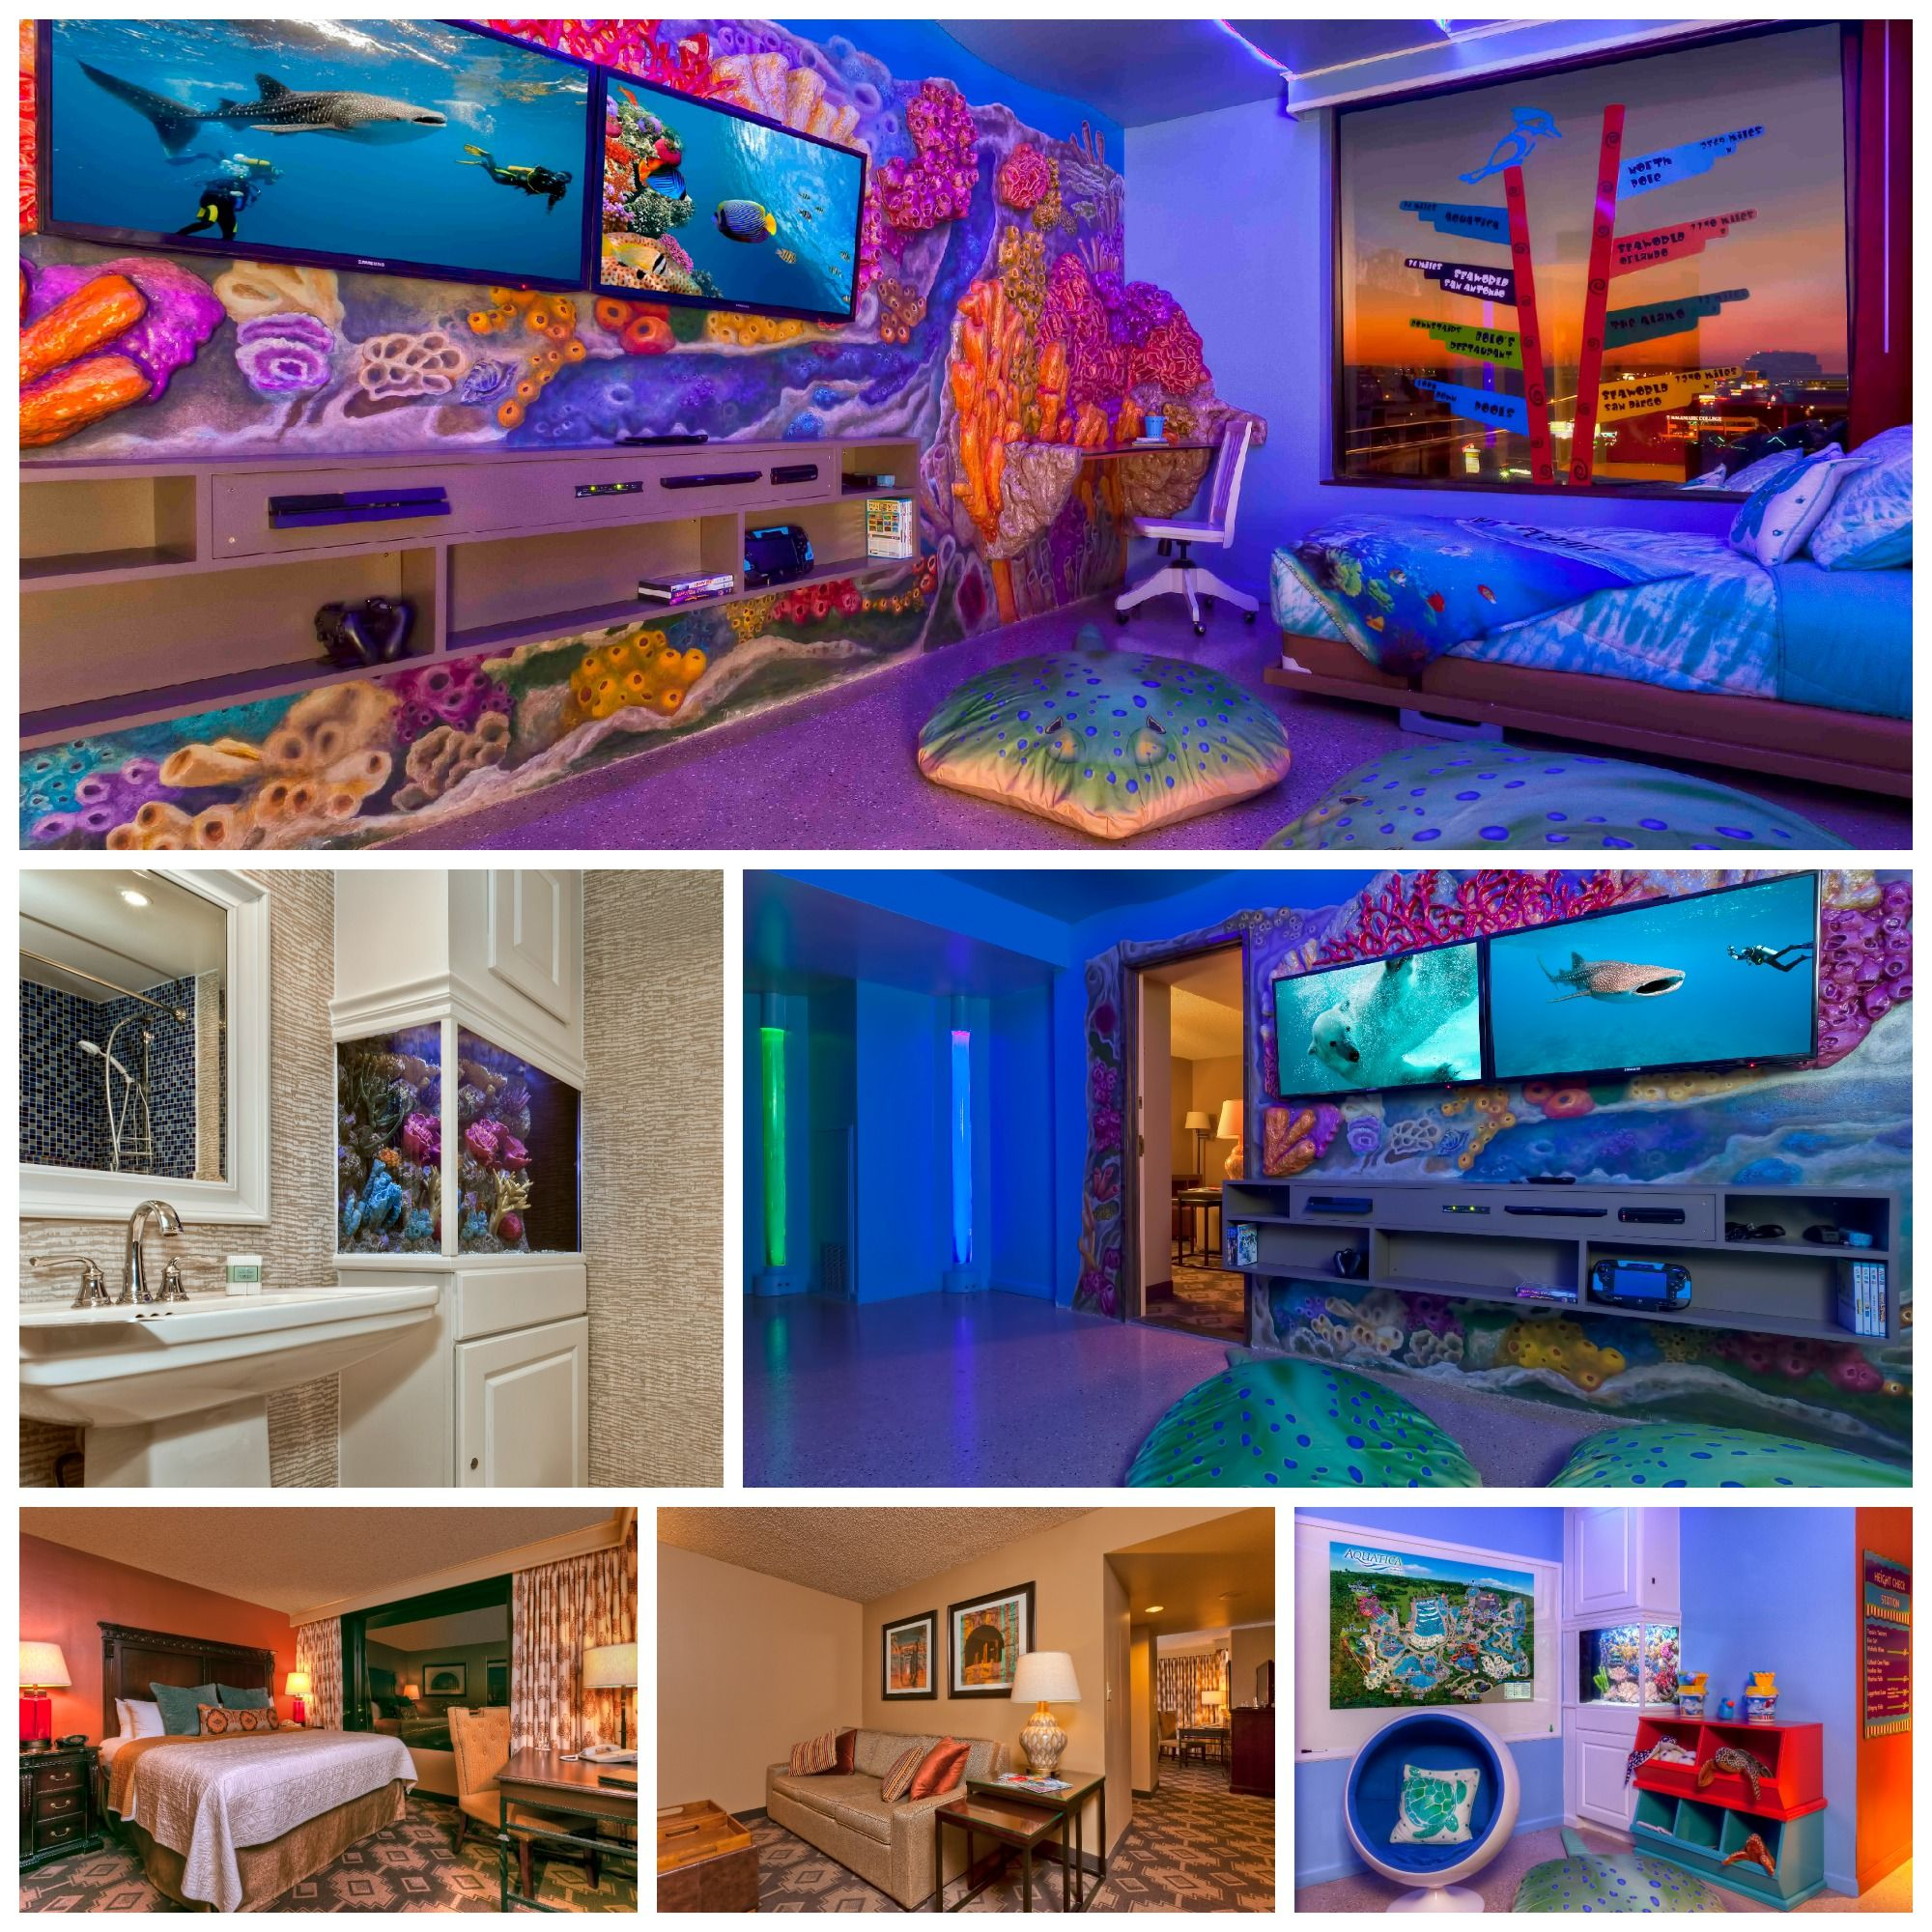 New Aquatica Suite Opens At Omni Colonnade Hotel In San